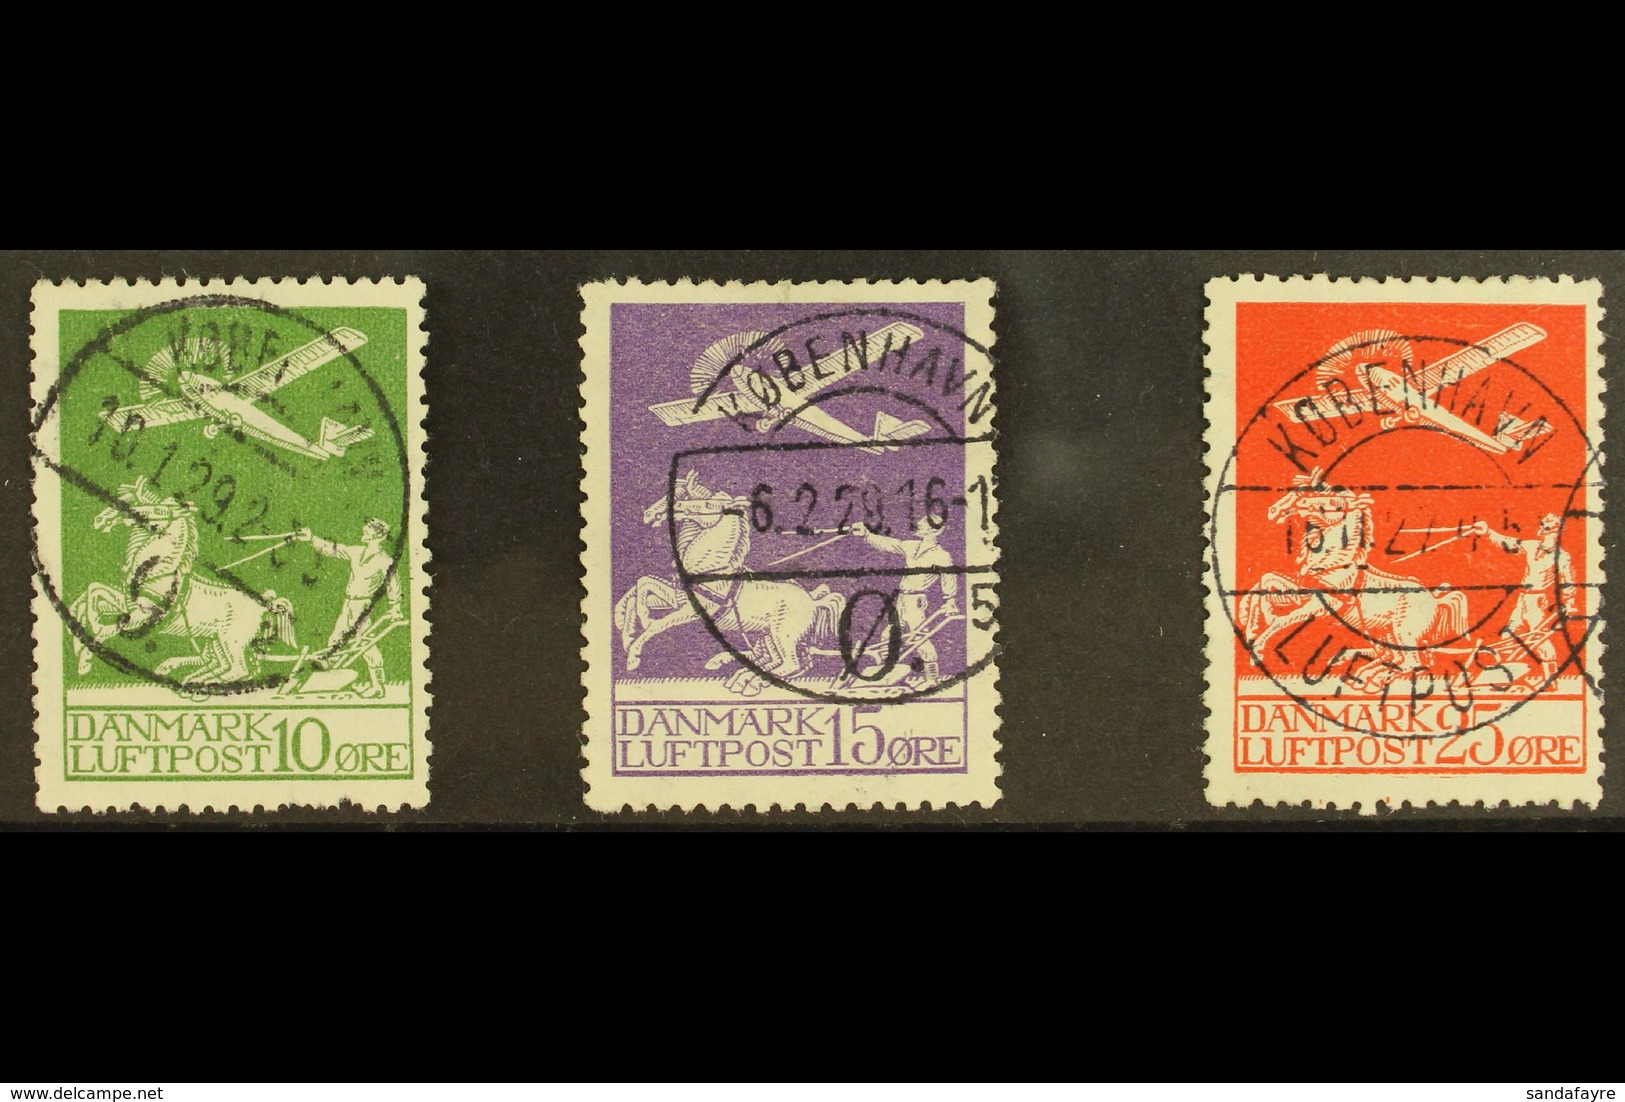 1925-26 10 Ore, 15 Ore, And 25 Ore Air Set, Michel 143/145 Or SG 224/226, Fine Used With Neat Cds Cancels. (3 Stamps)  F - Denmark